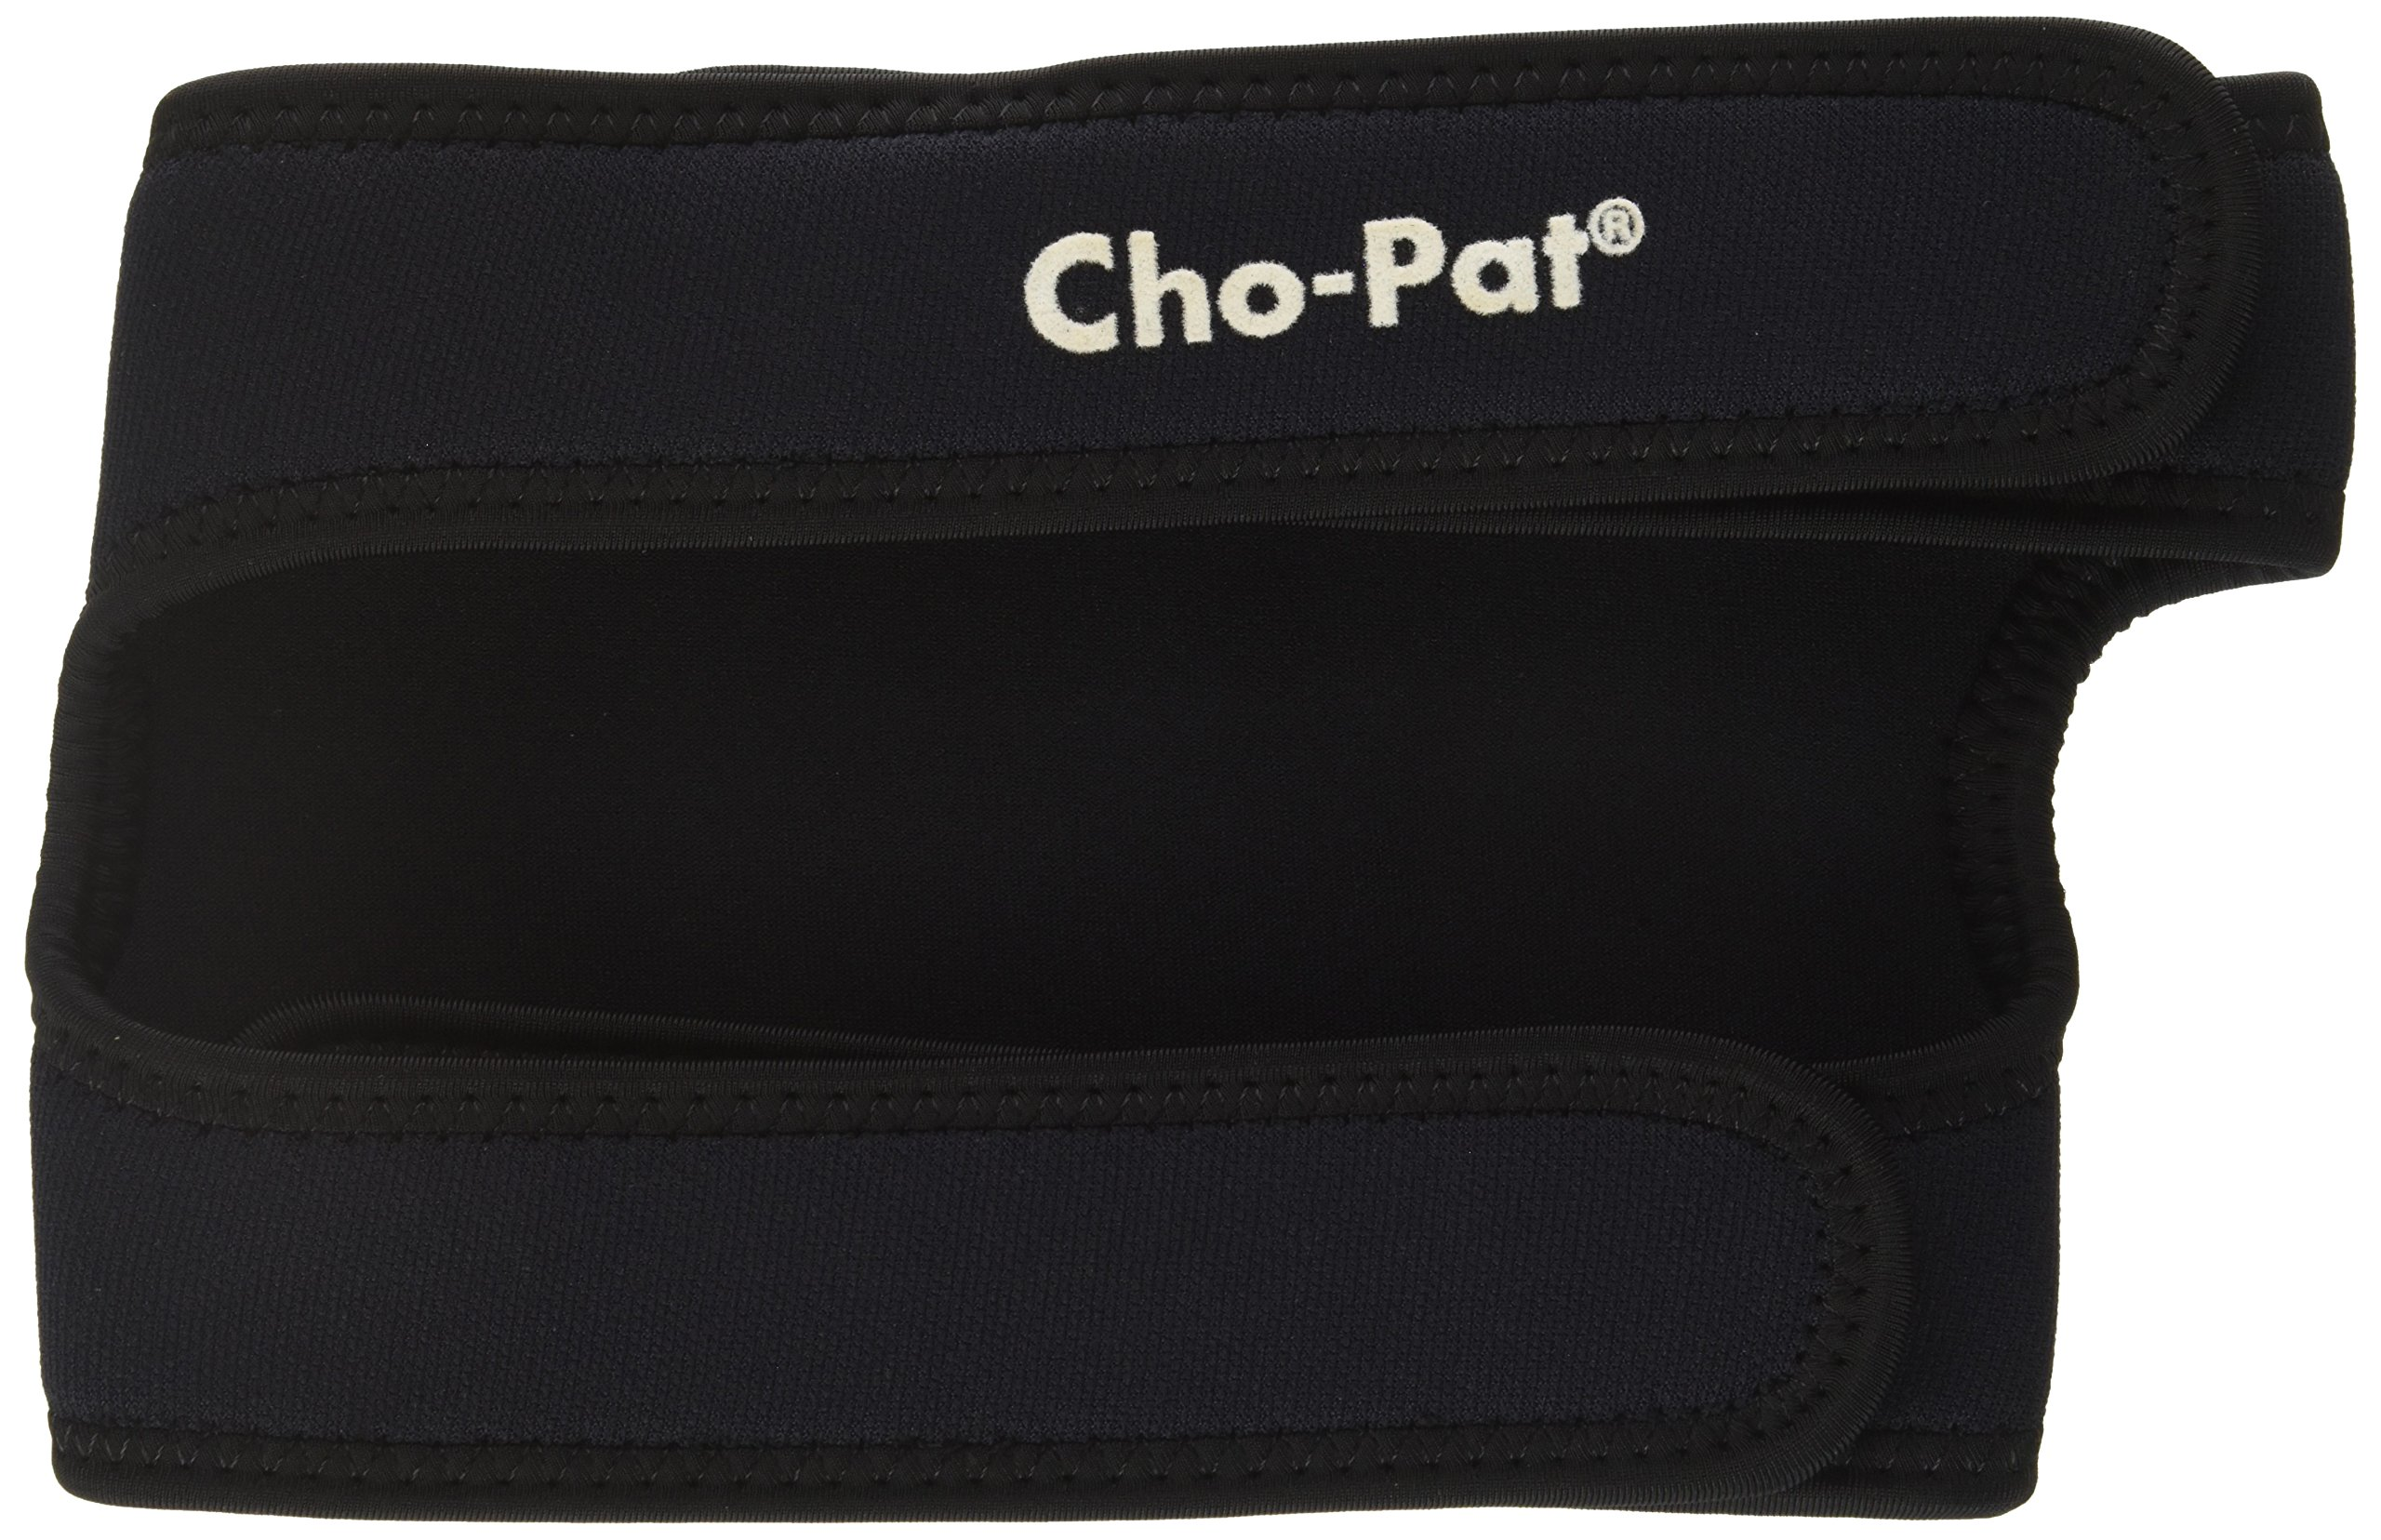 Cho-Pat Dual Action Knee Strap - Provides Full Mobility & Pain Relief For Weakened Knees - Black (XX-Large, 20''-22'')